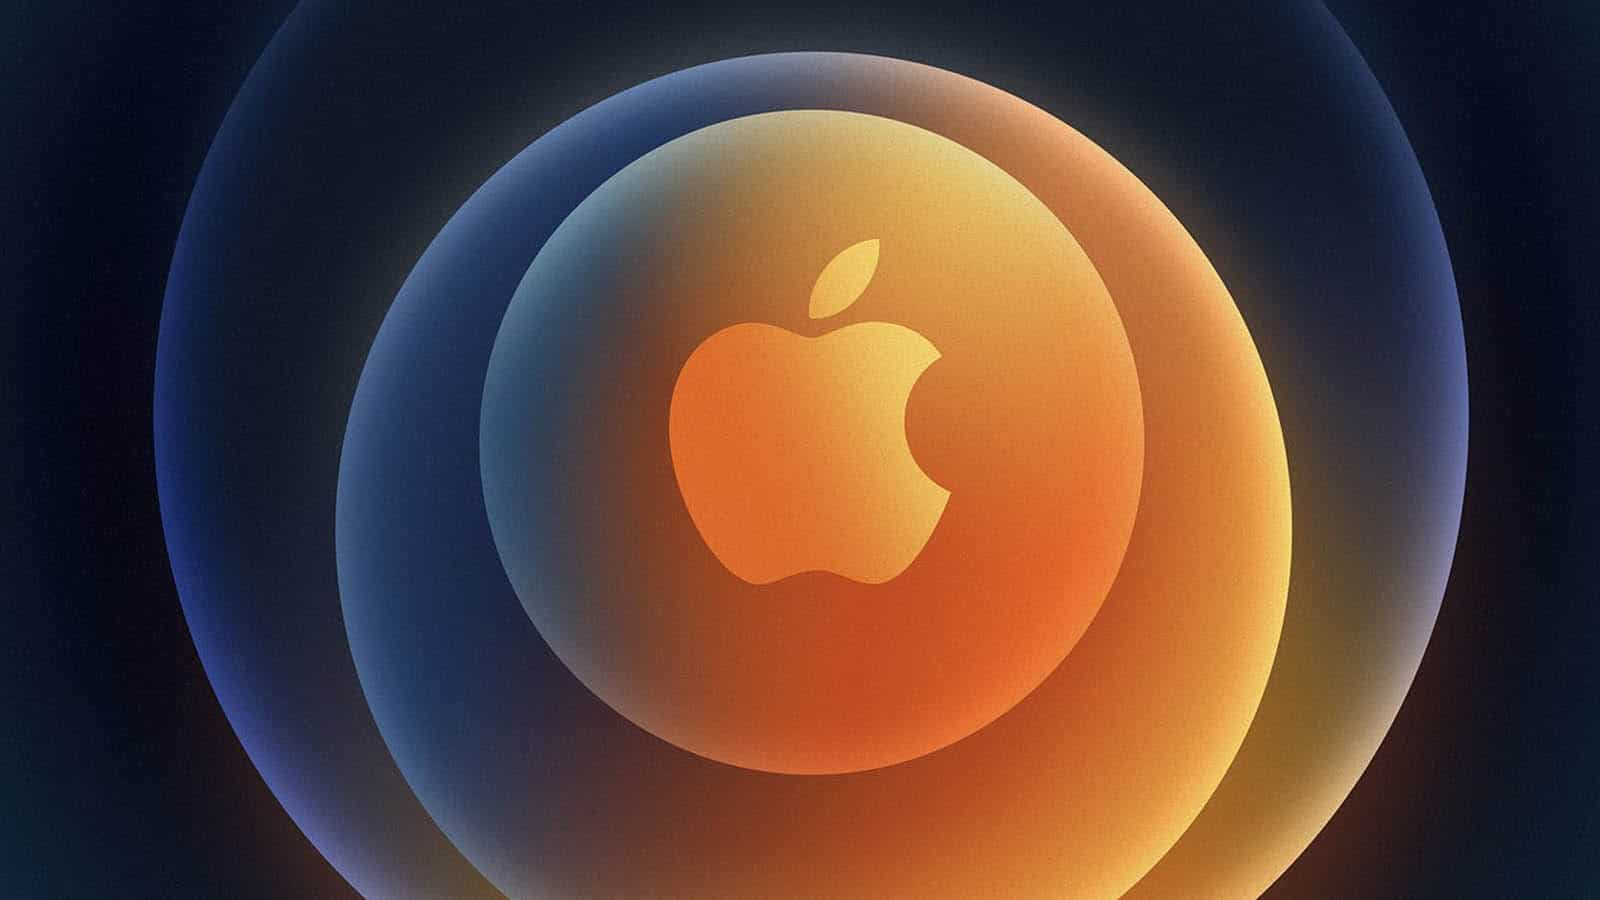 new apple event october 13